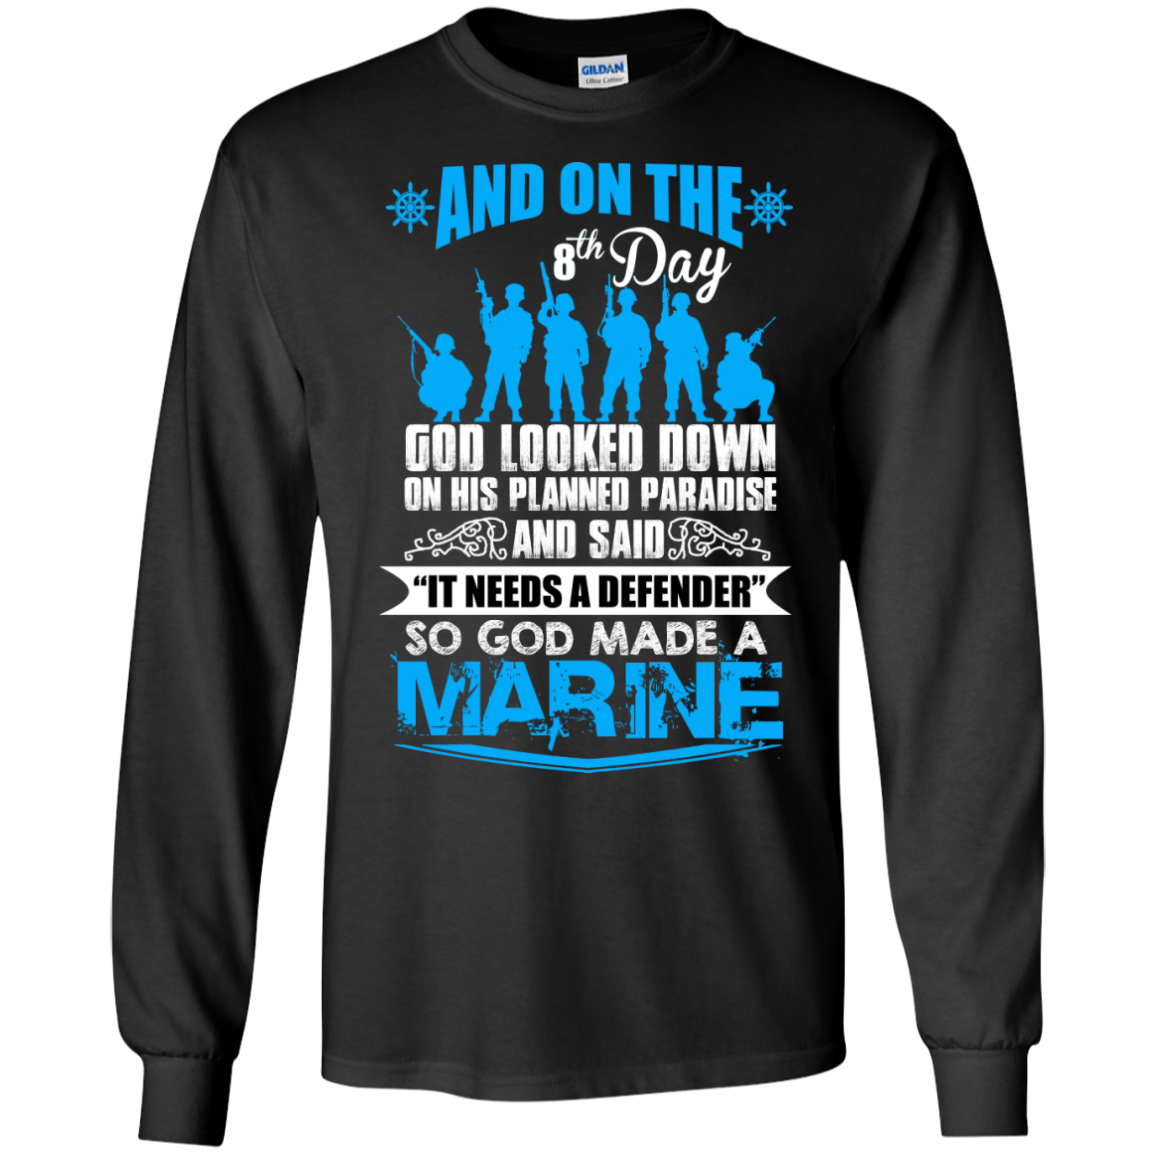 ON THE 8TH DAY, GOD MADE A MARINE T SHIRT